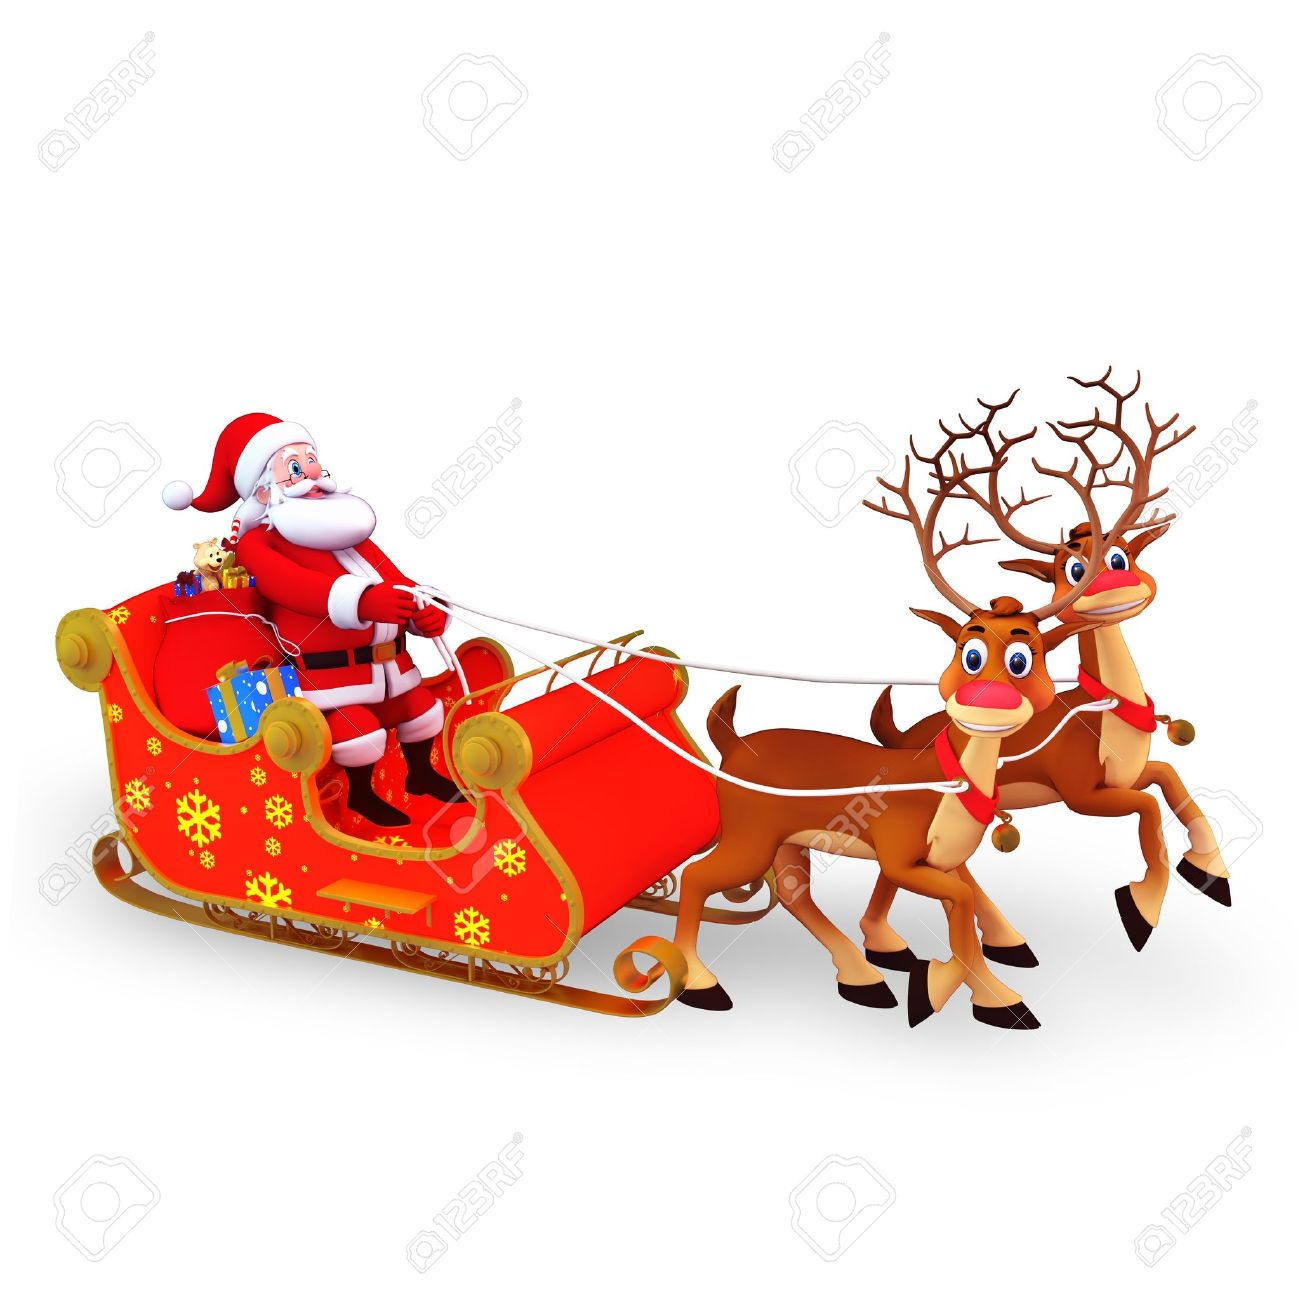 santa claus is with his sleigh and gifts stock photo 15049047 - Santa With Reindeer